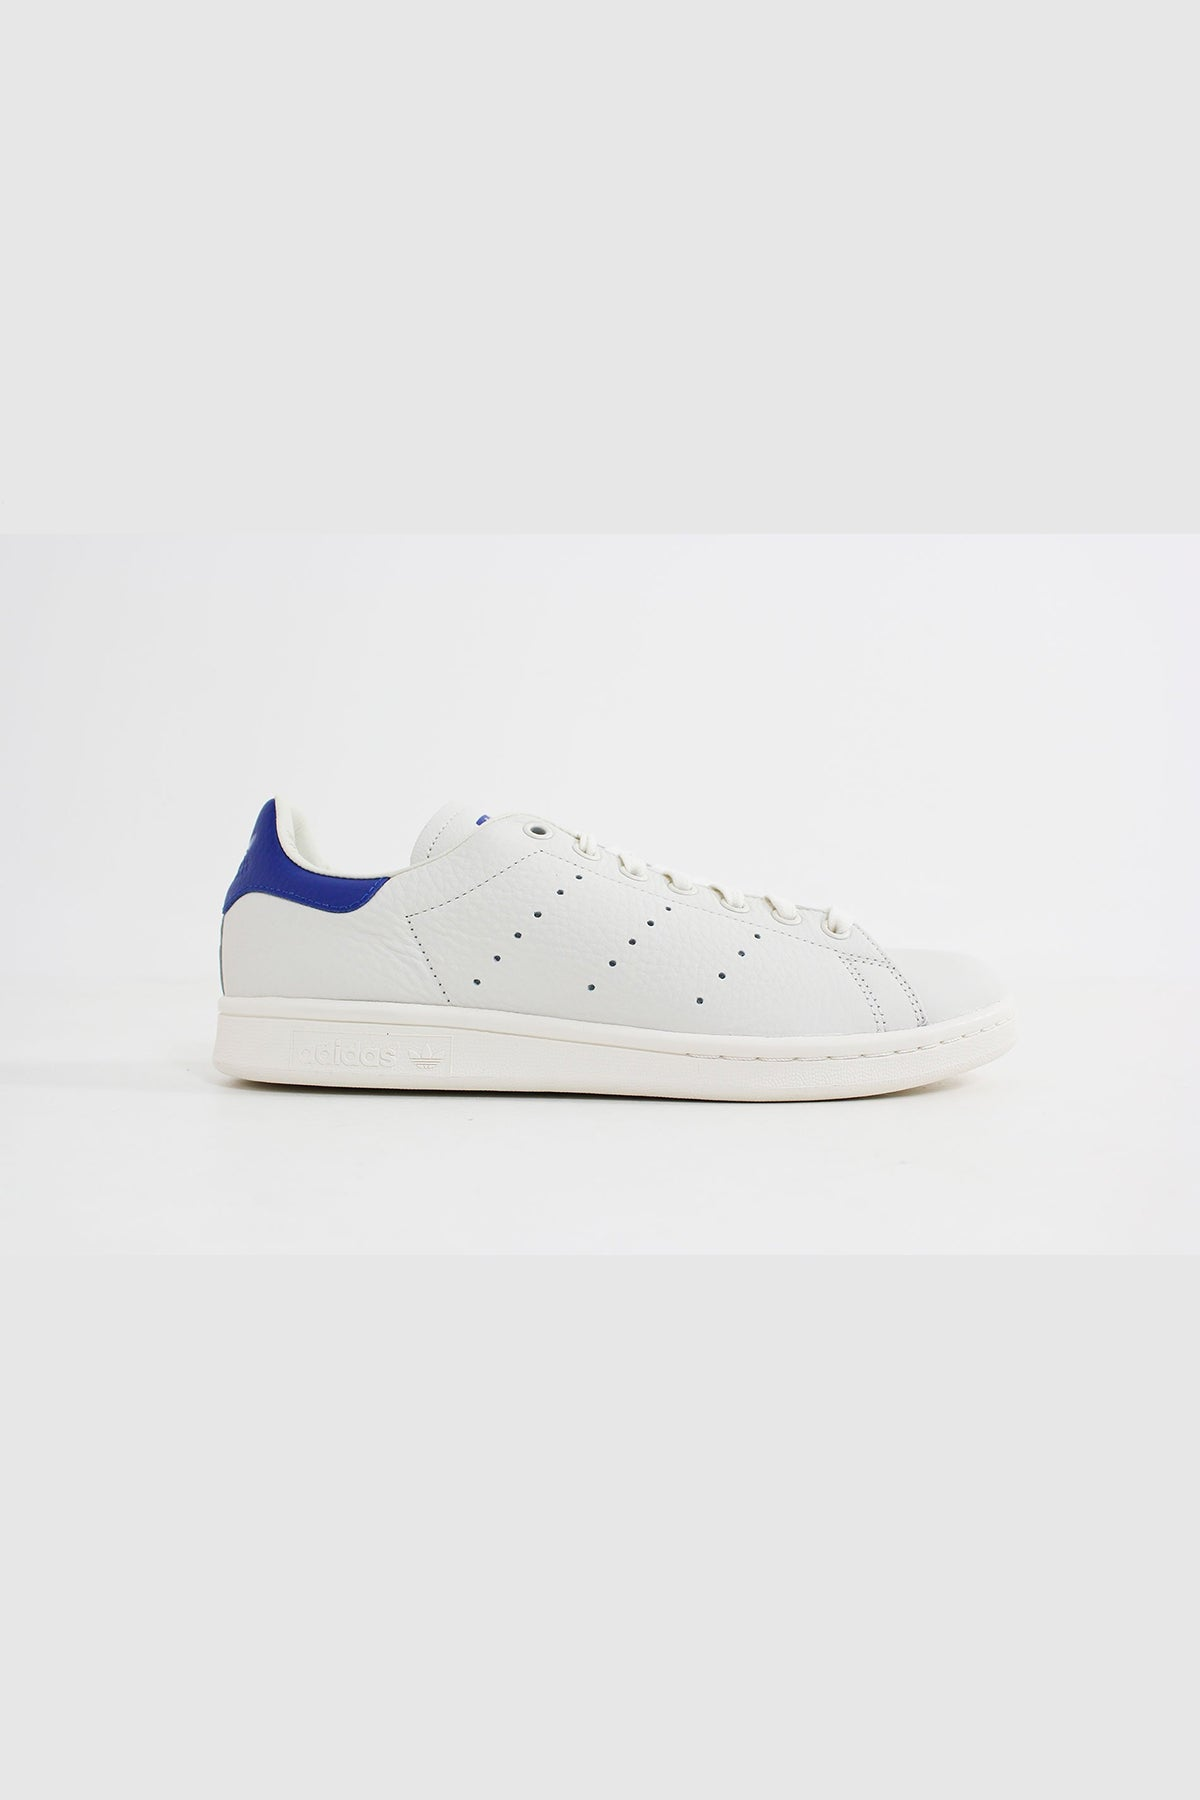 Can Adidas Repeat its Stan Smith Success Story?  News